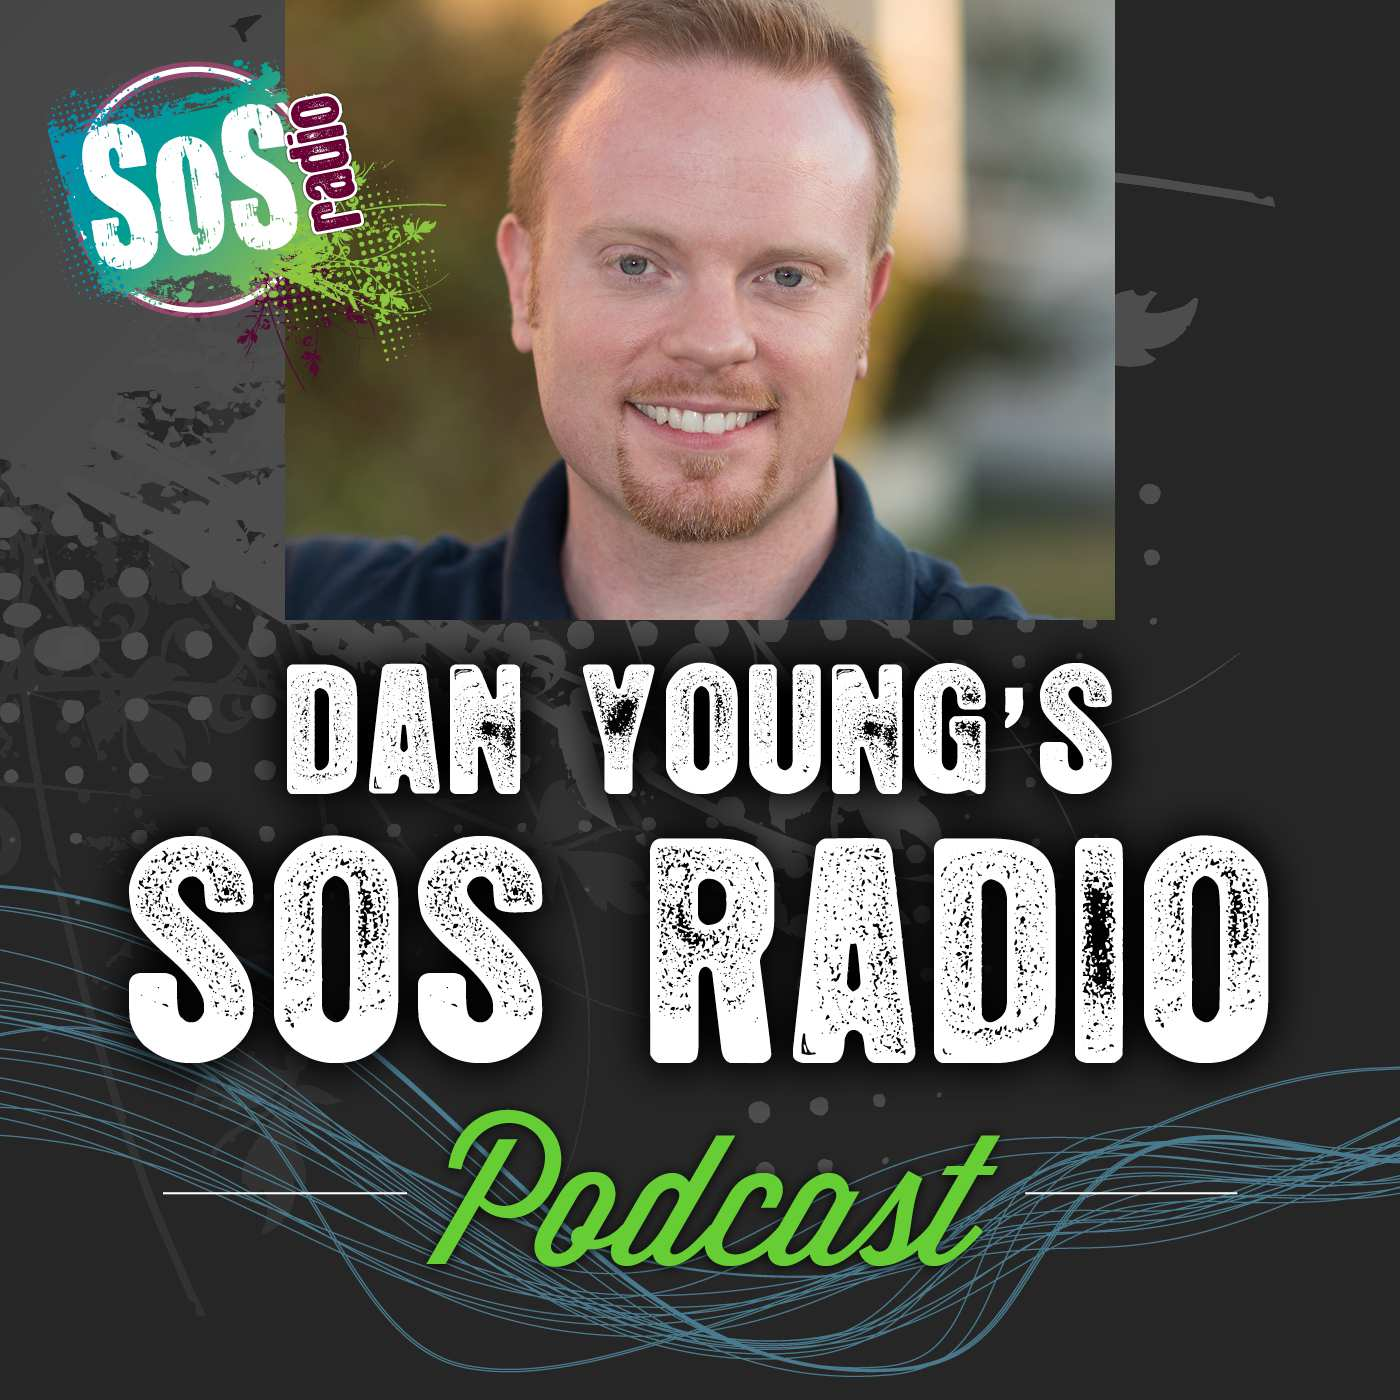 Dan Young's Podcast